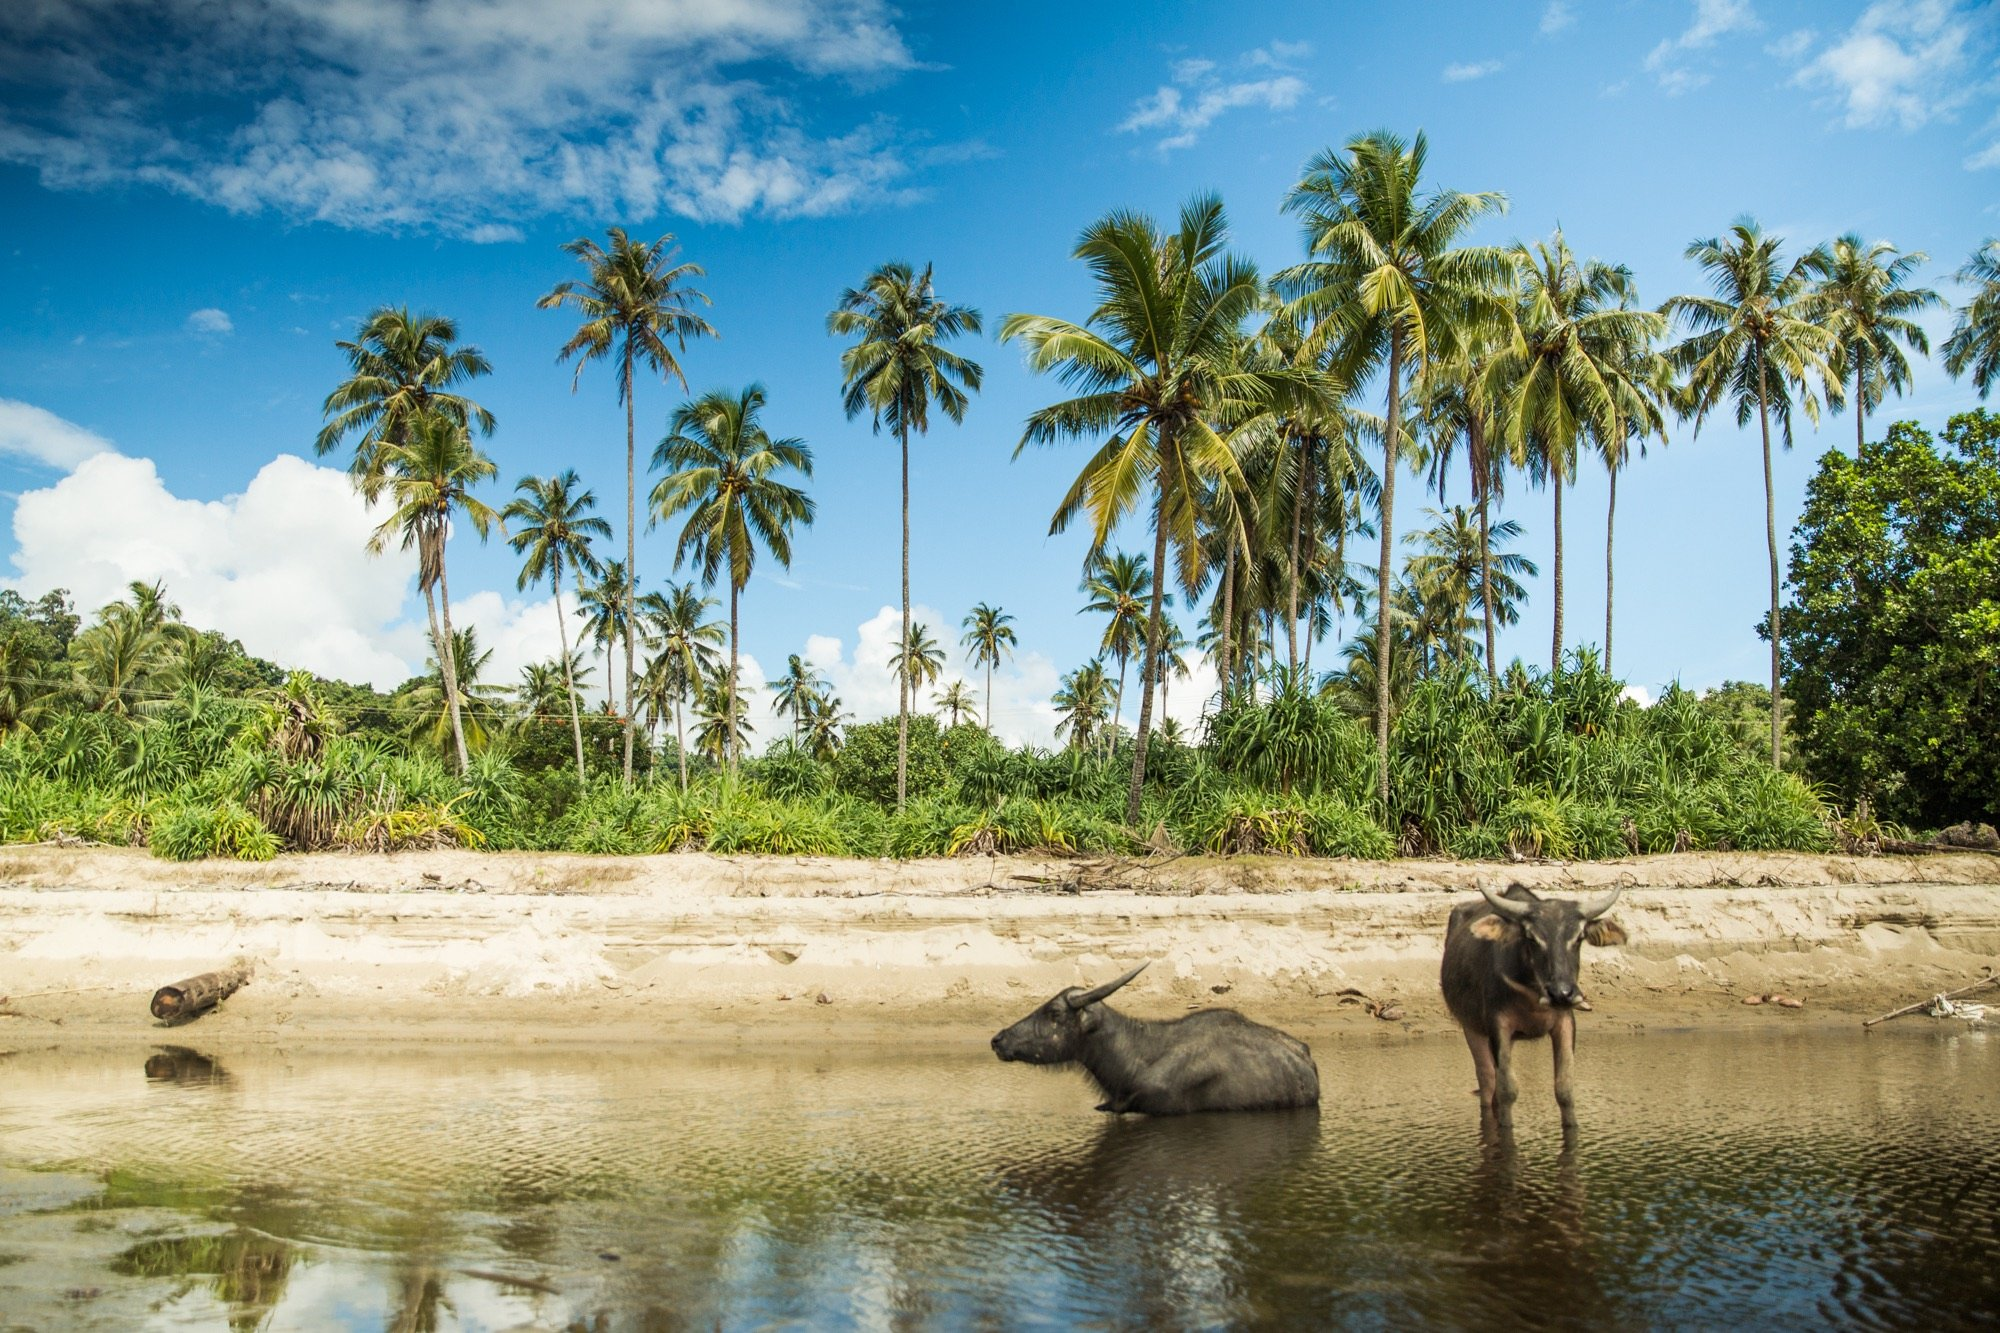 Sumatran buffaloes on Simeulue Island